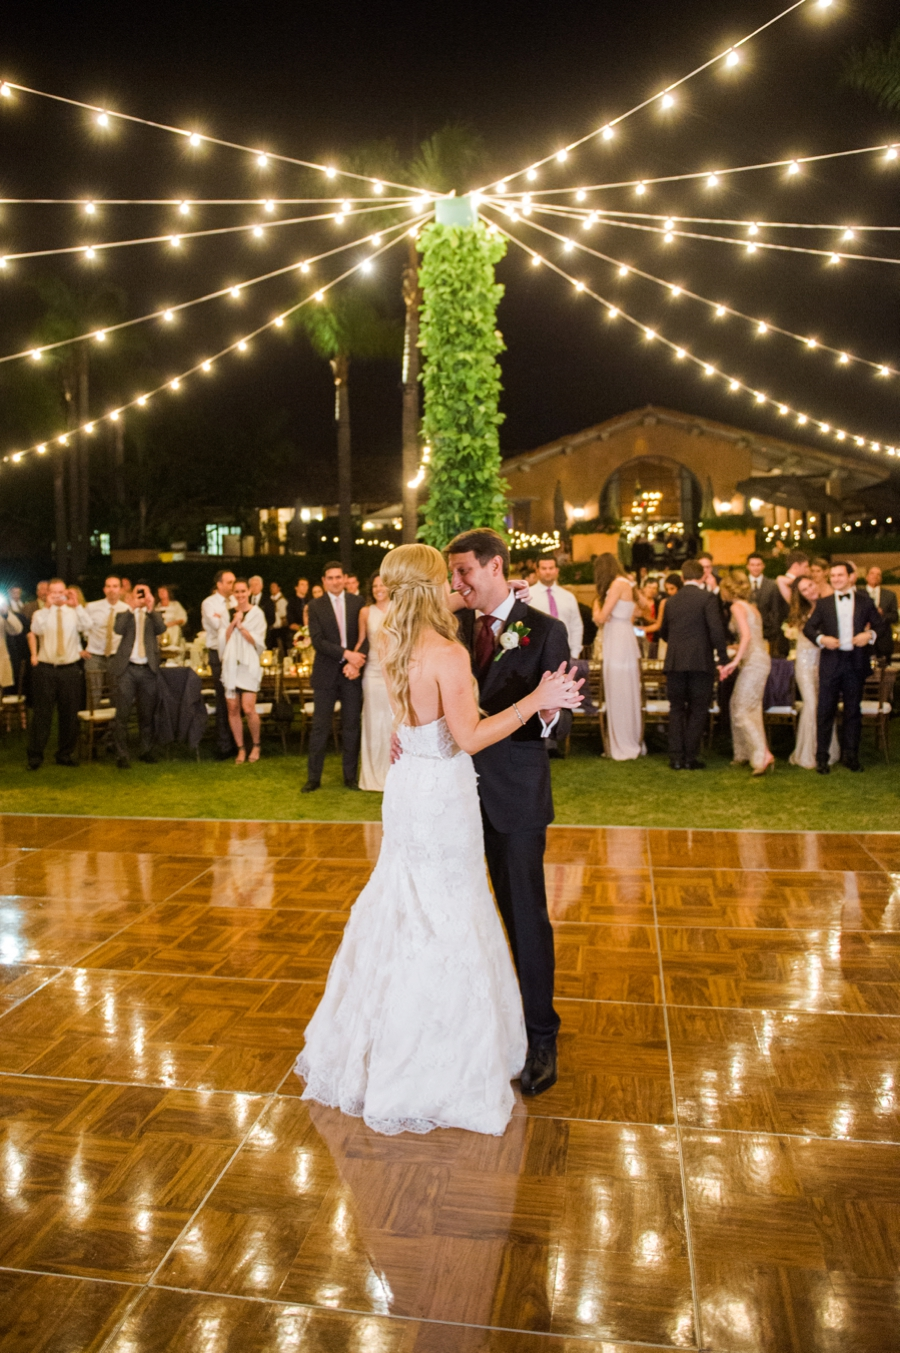 Rancho_Valencia_Resort_and_Spa_San_Diego_SoCal_Wedding_029.jpg